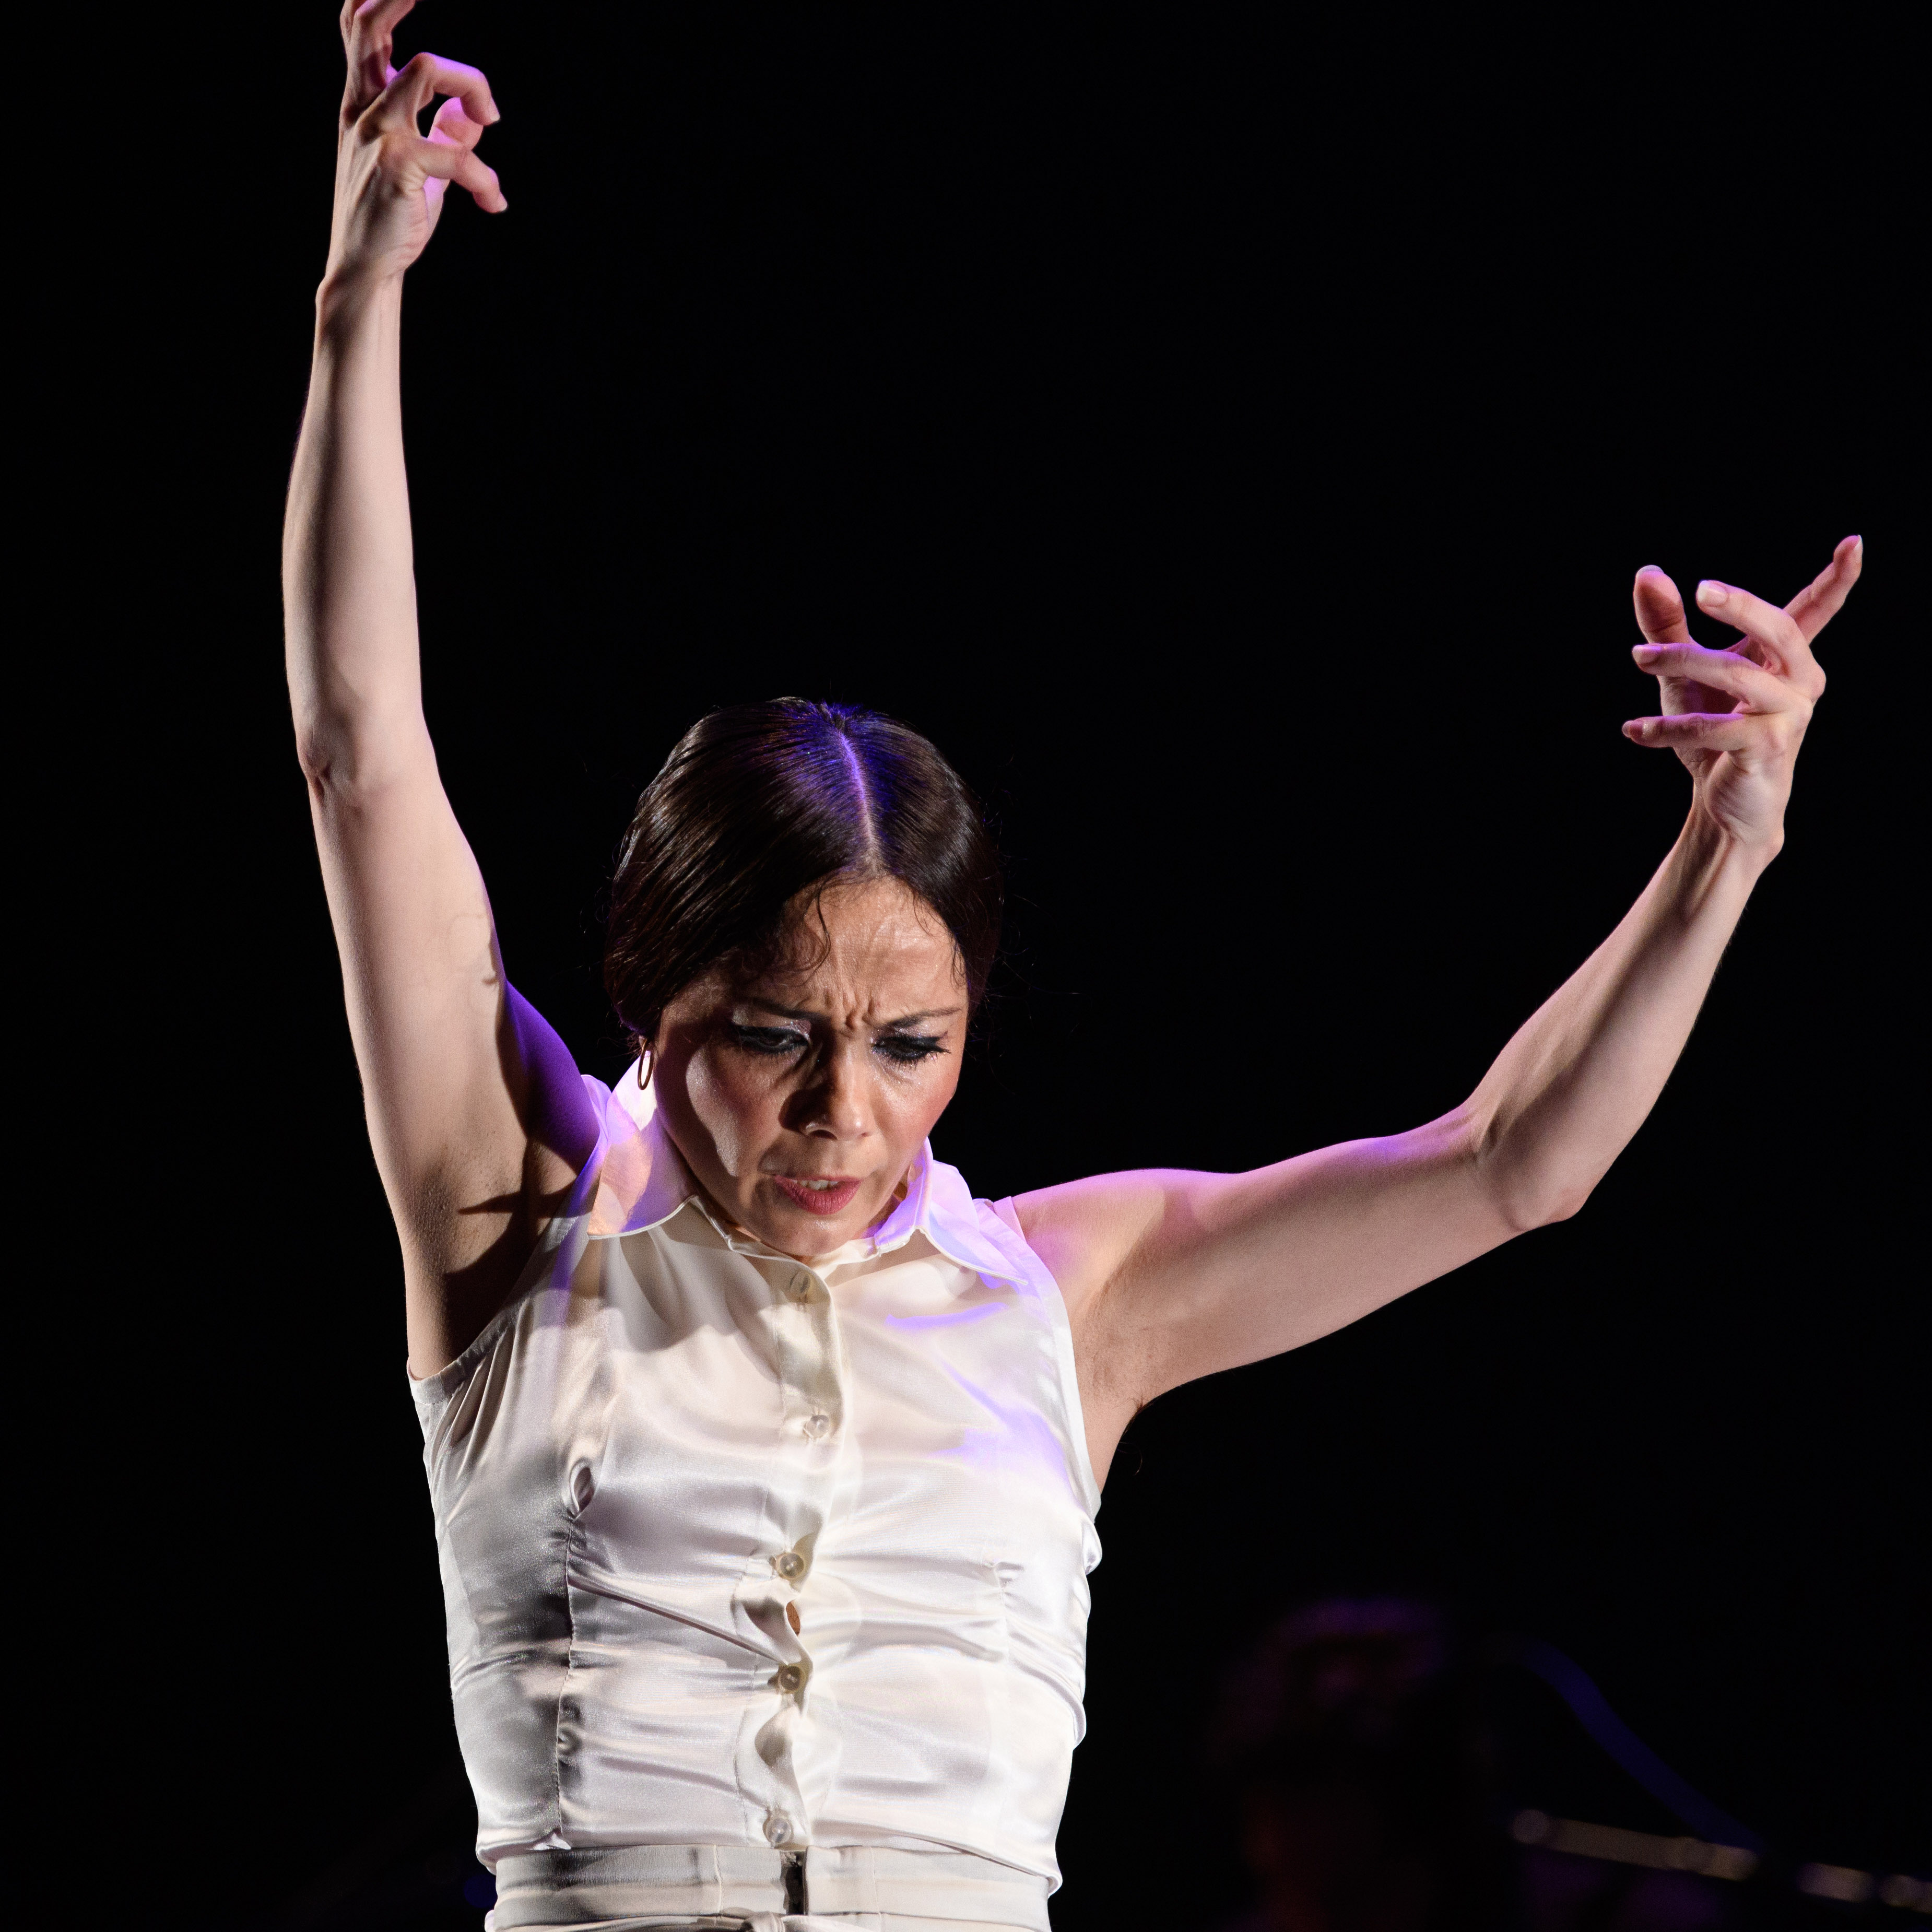 THE RETURN OF FLAMENCO STAR OLGA PERICET TO REPERTORIO THIS FALL